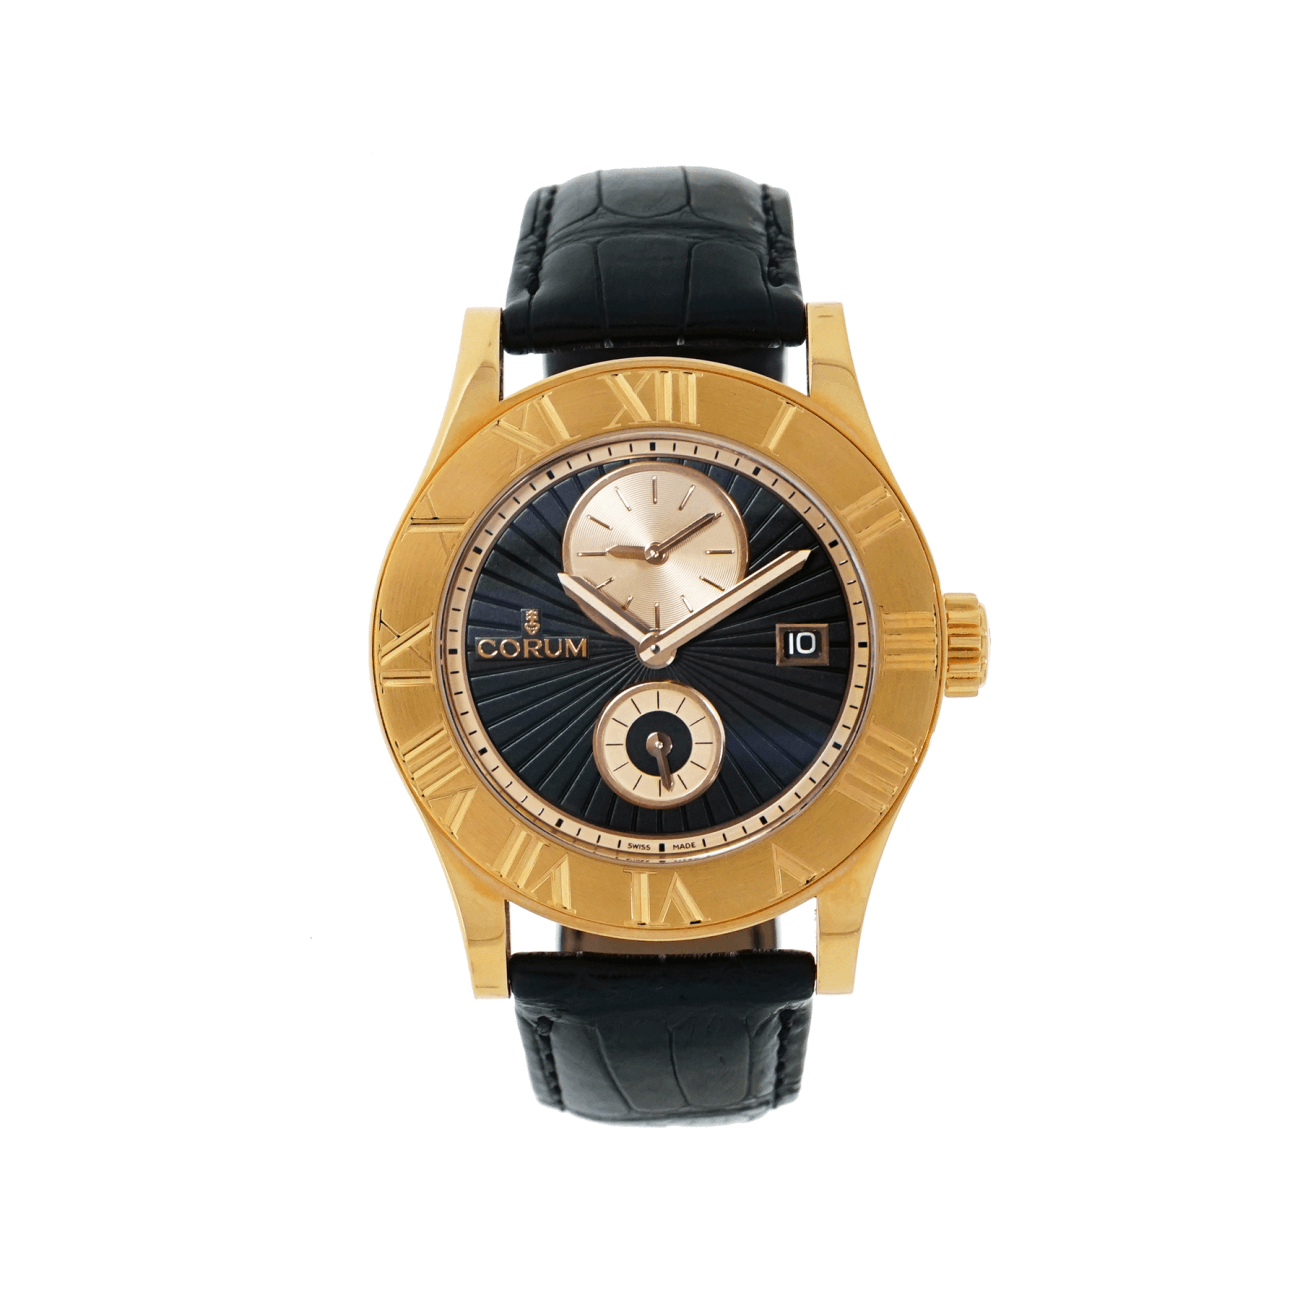 Pre-Owned Corum Watches - Romvlvs | Manfredi Jewels